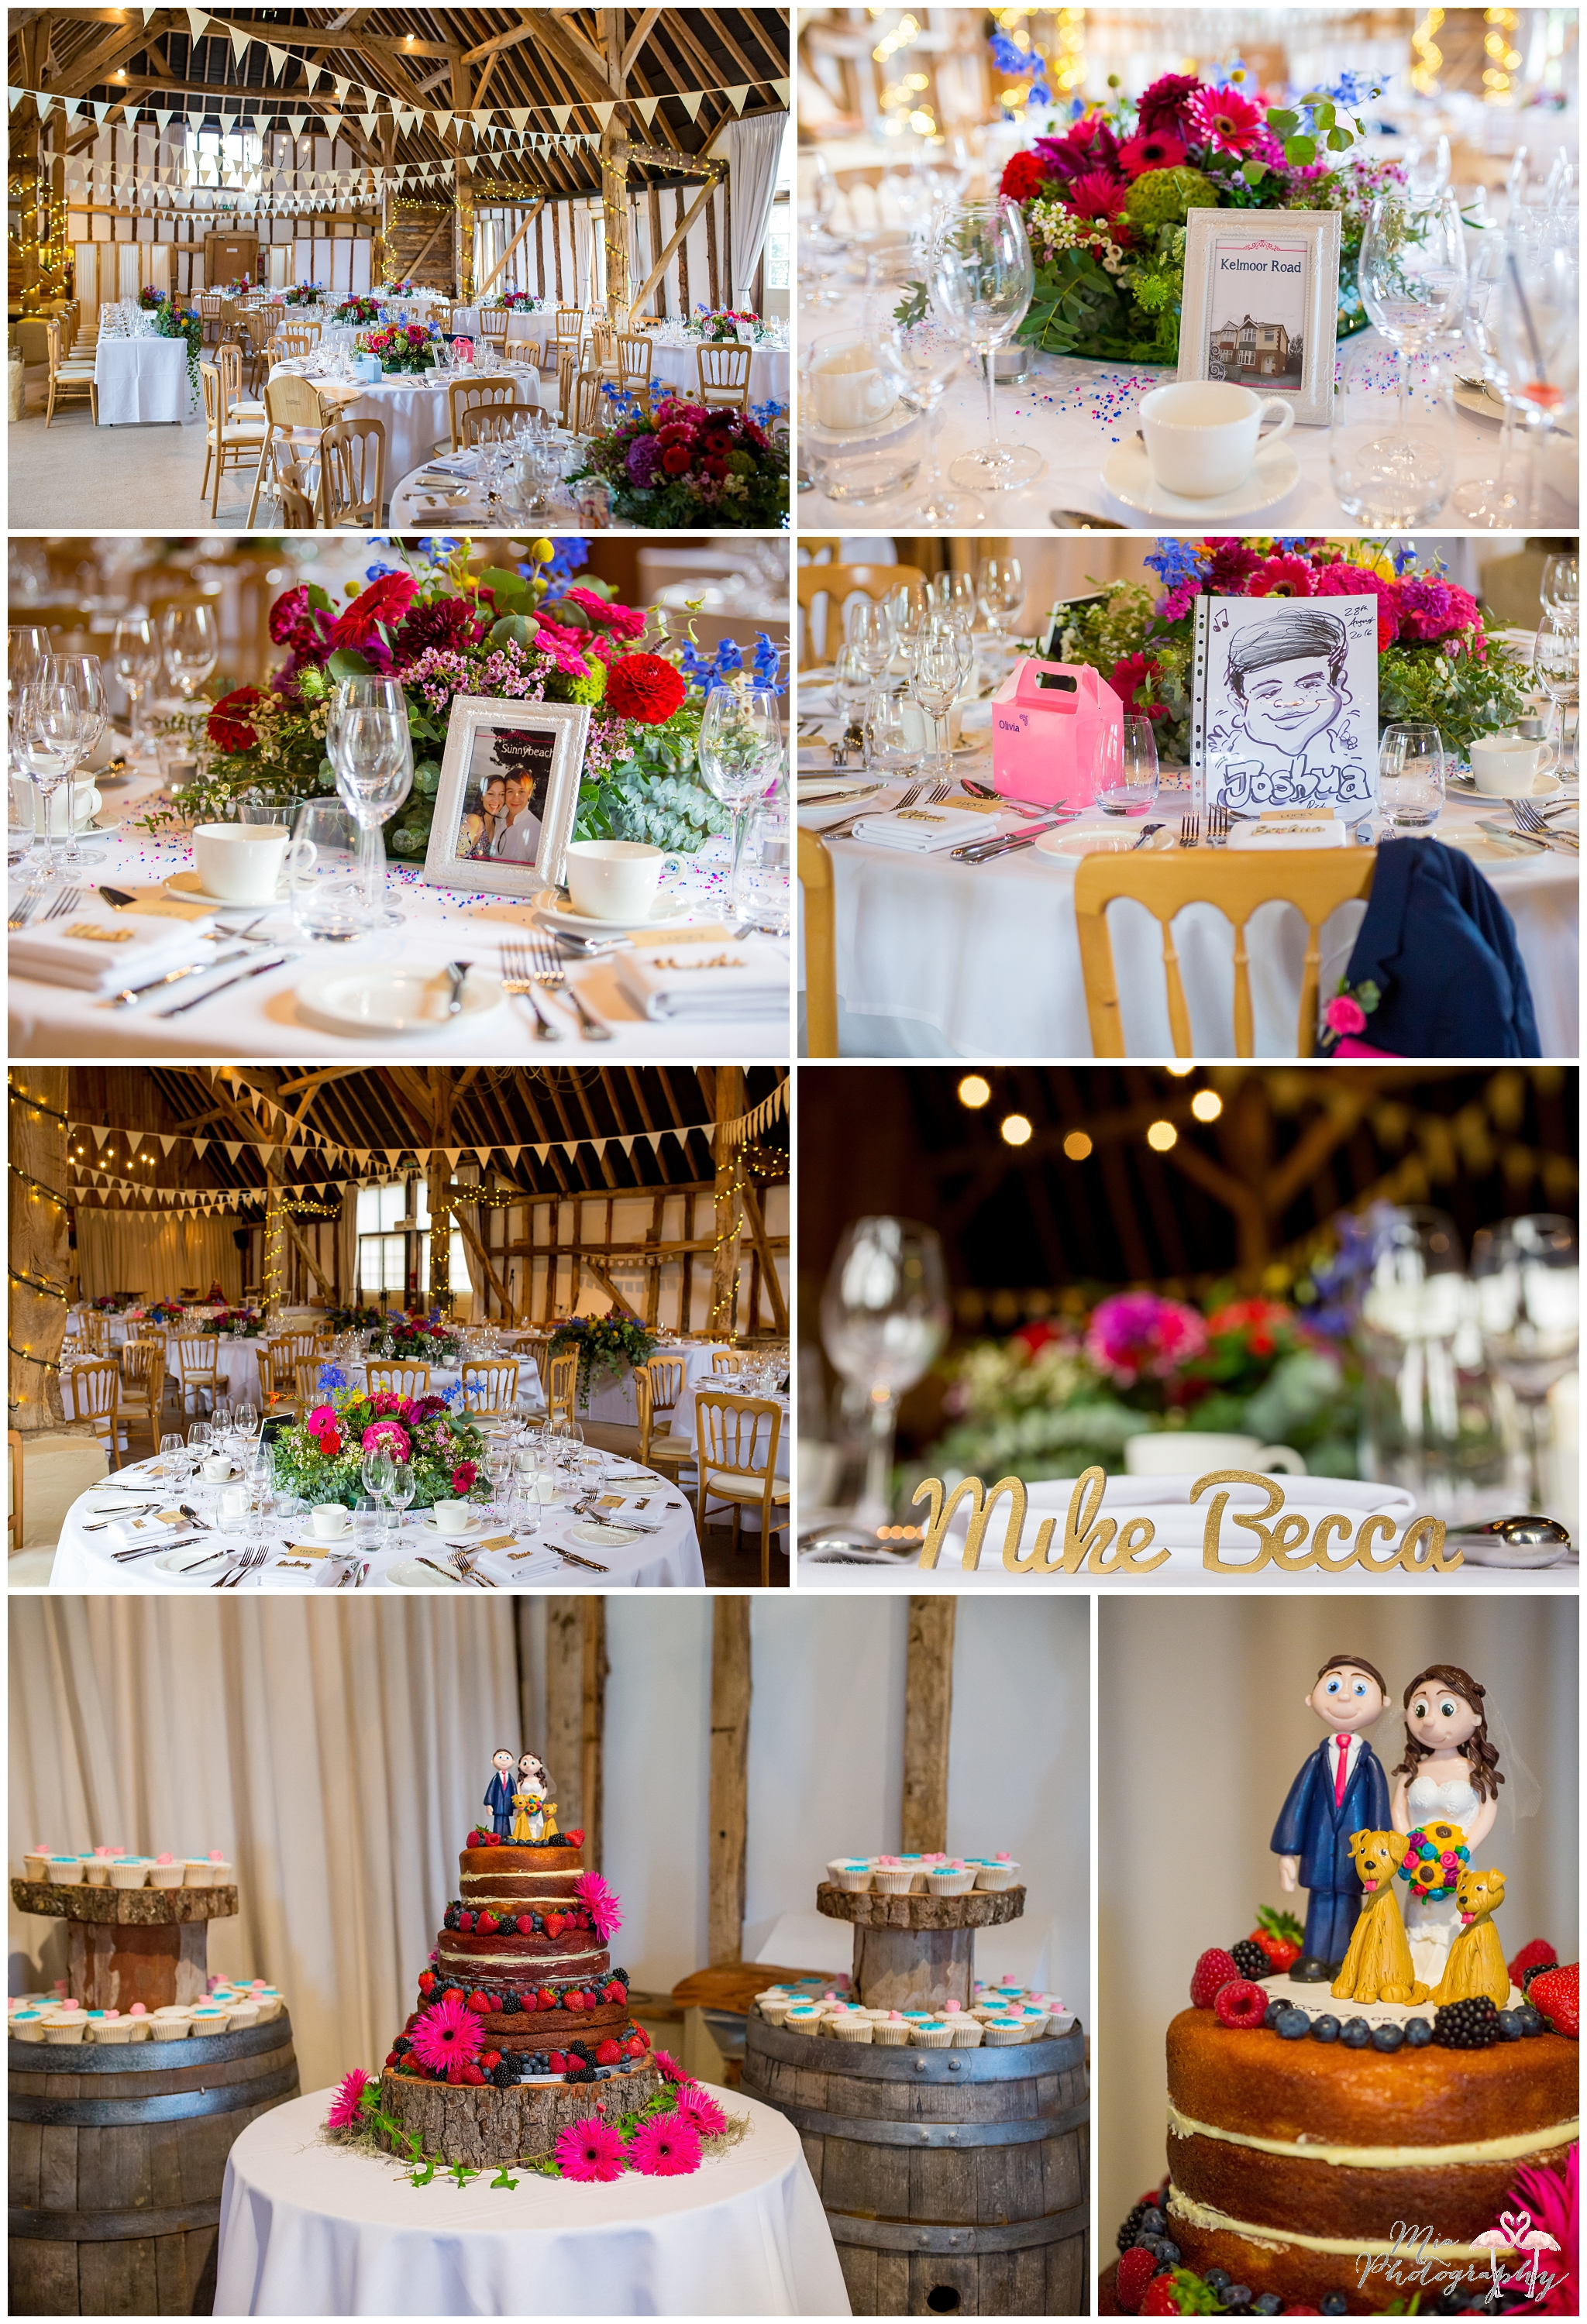 Table layouts and details at Clock Barn